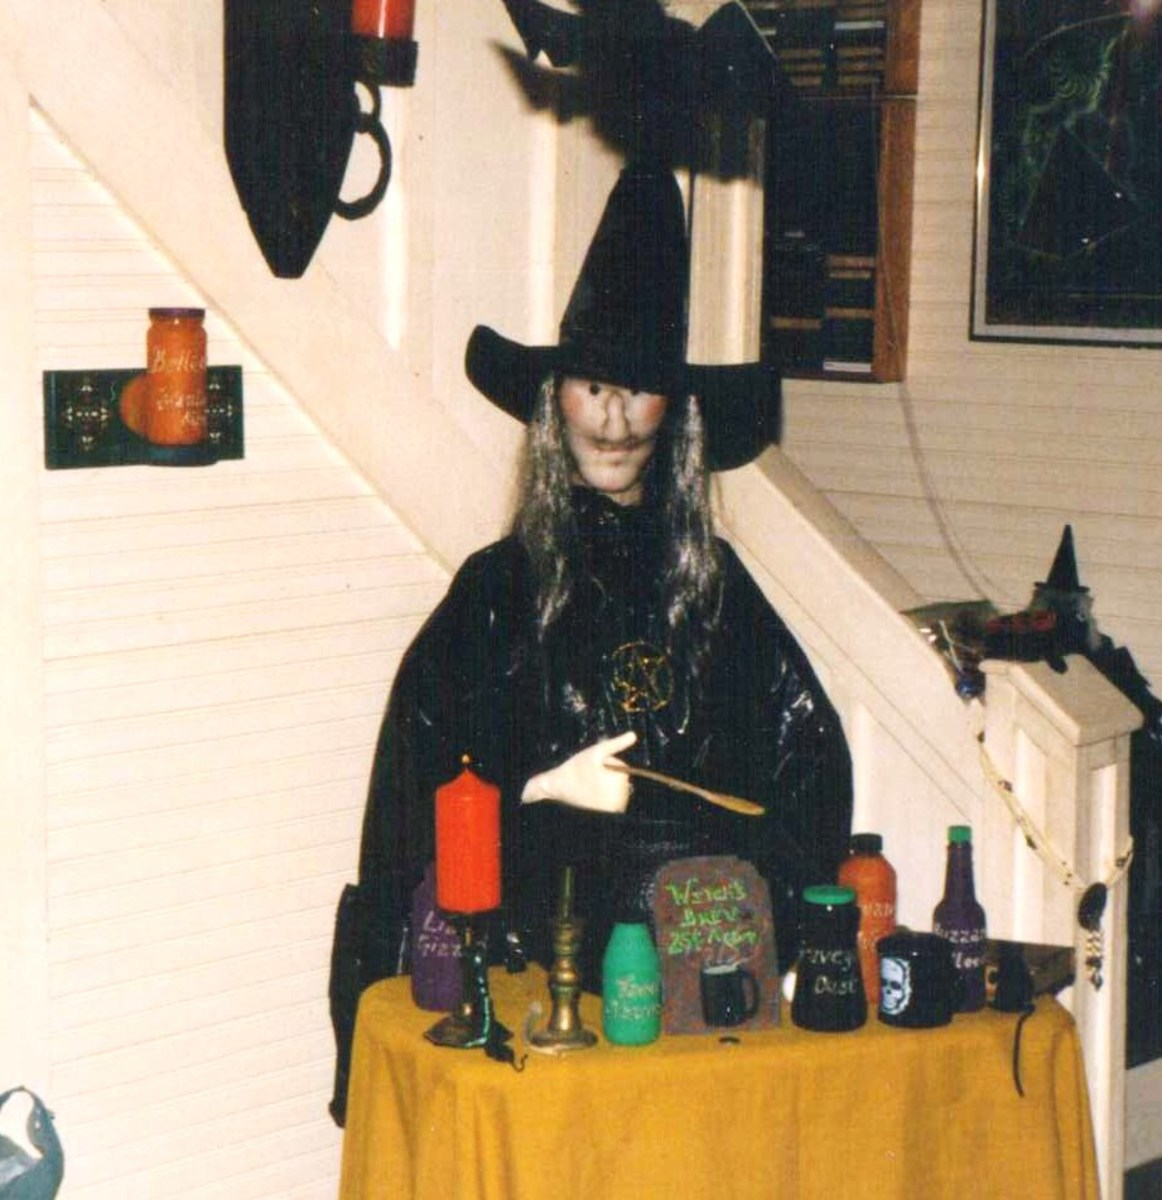 A surviving photo of Mabel at her potion stand.